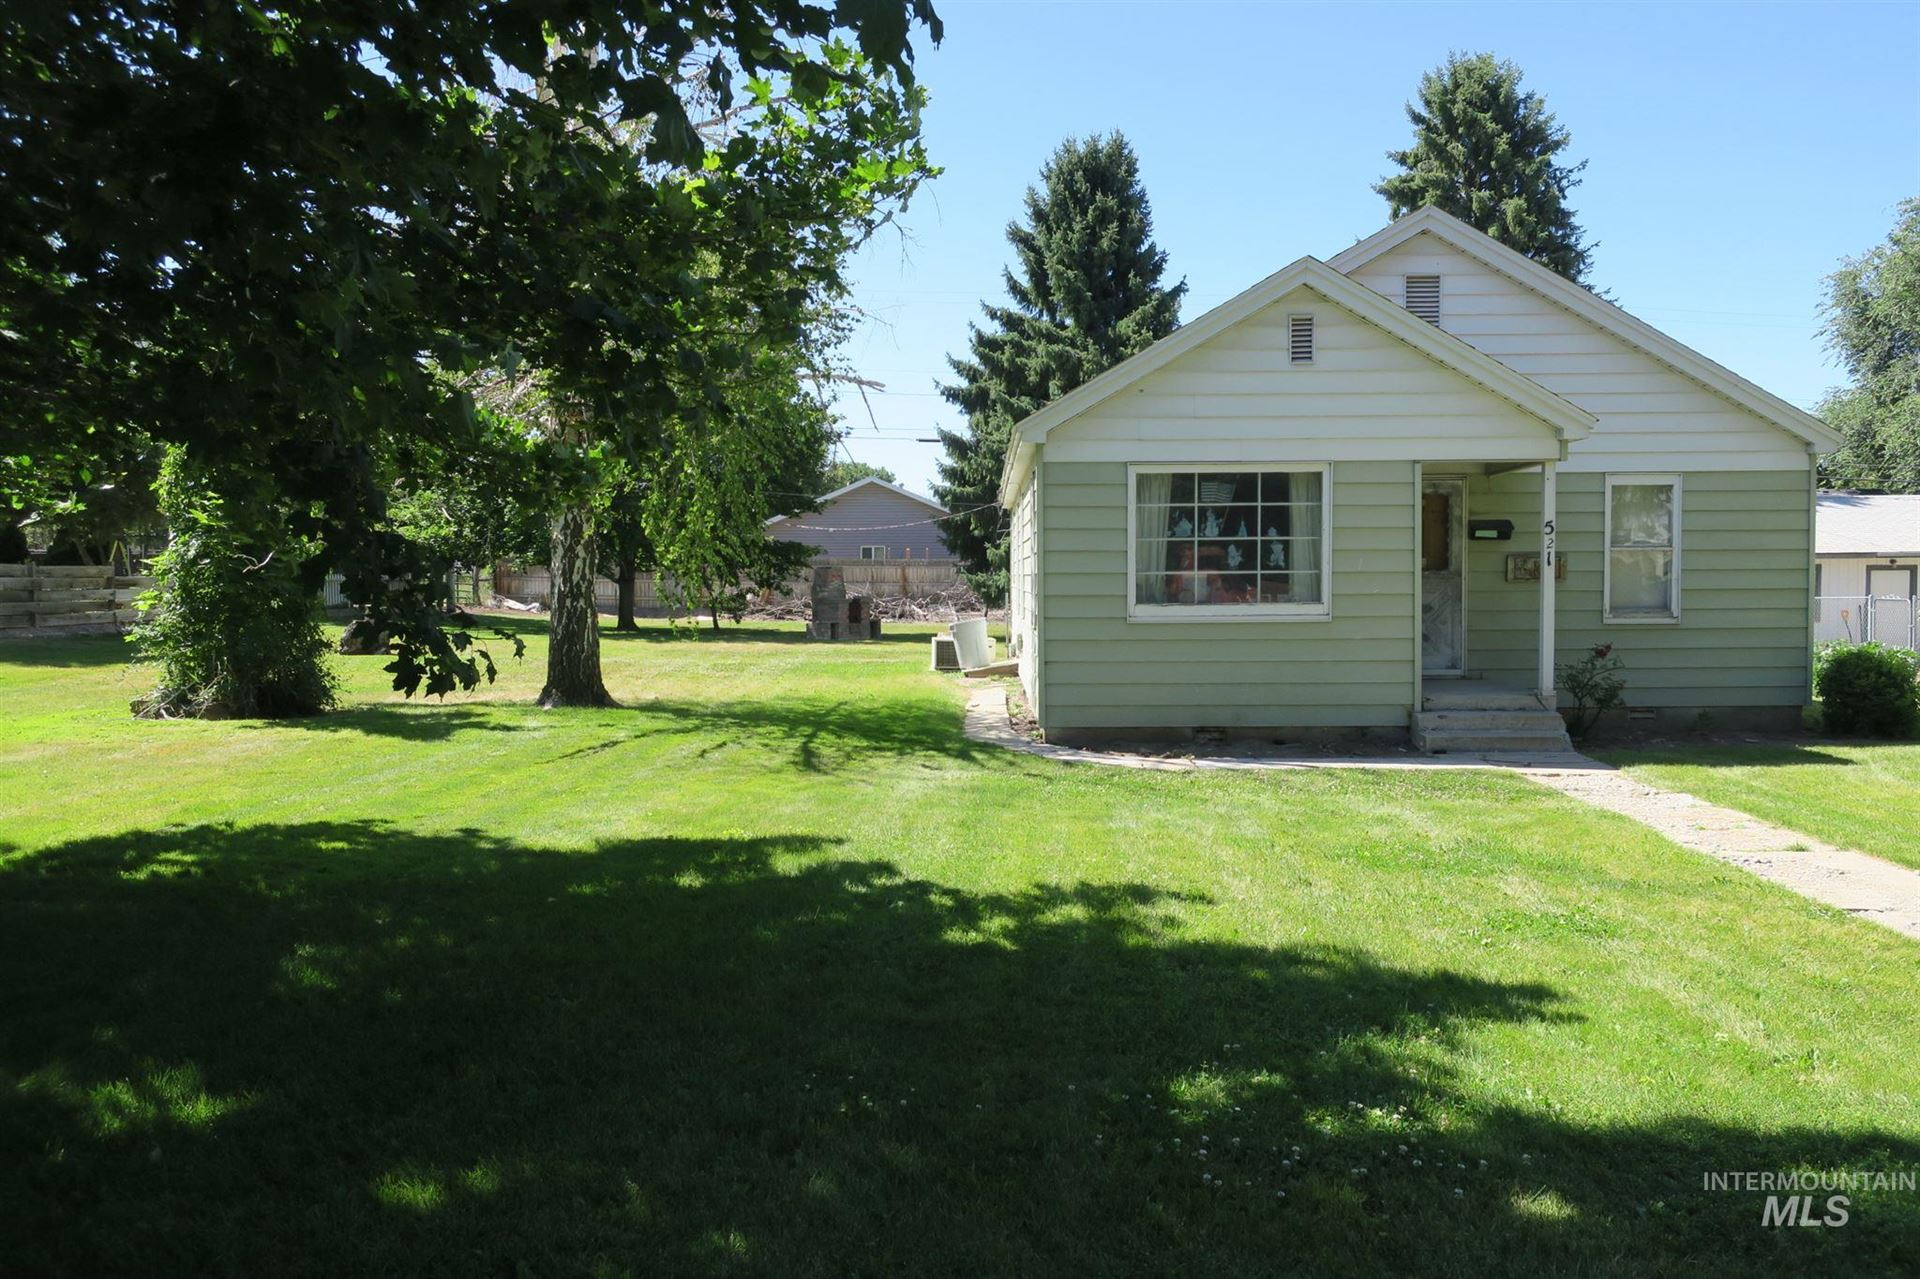 Photo of 521 D Ave. East, Jerome, ID 83338 (MLS # 98773854)